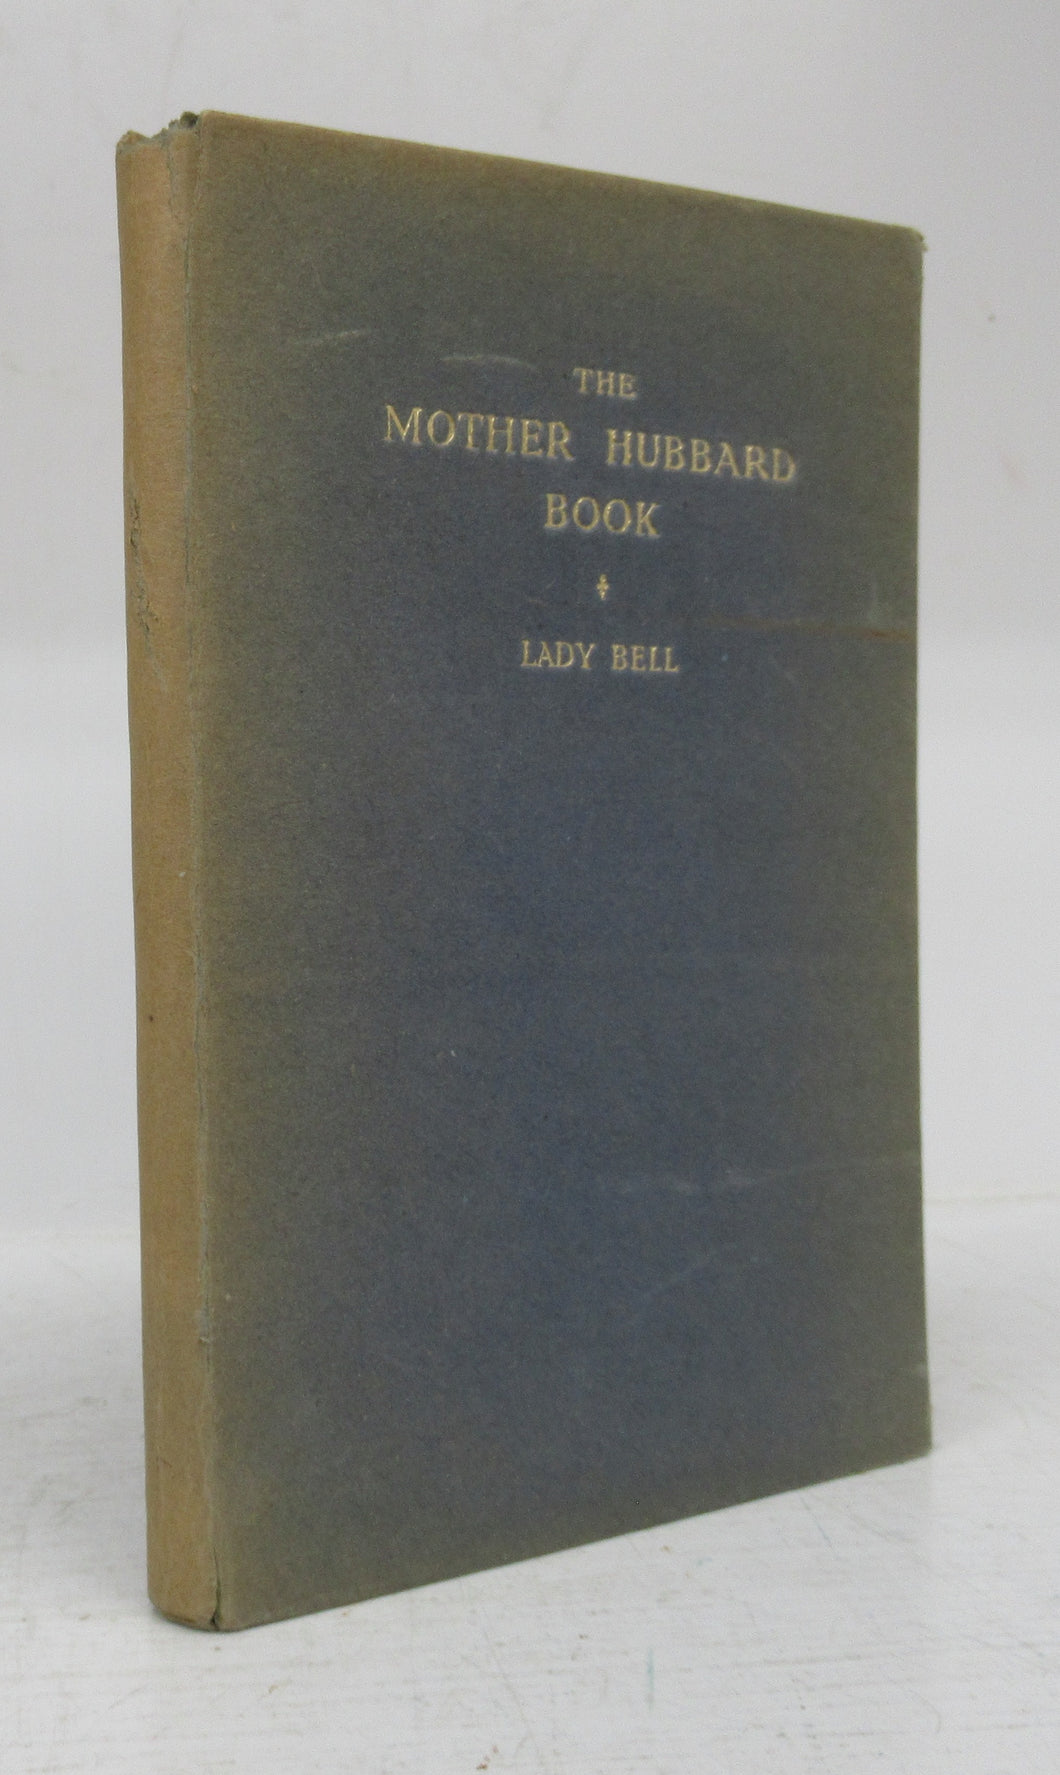 The Mother Hubbard Book of Playlets, Action Songs, and Singing Games for Young Children